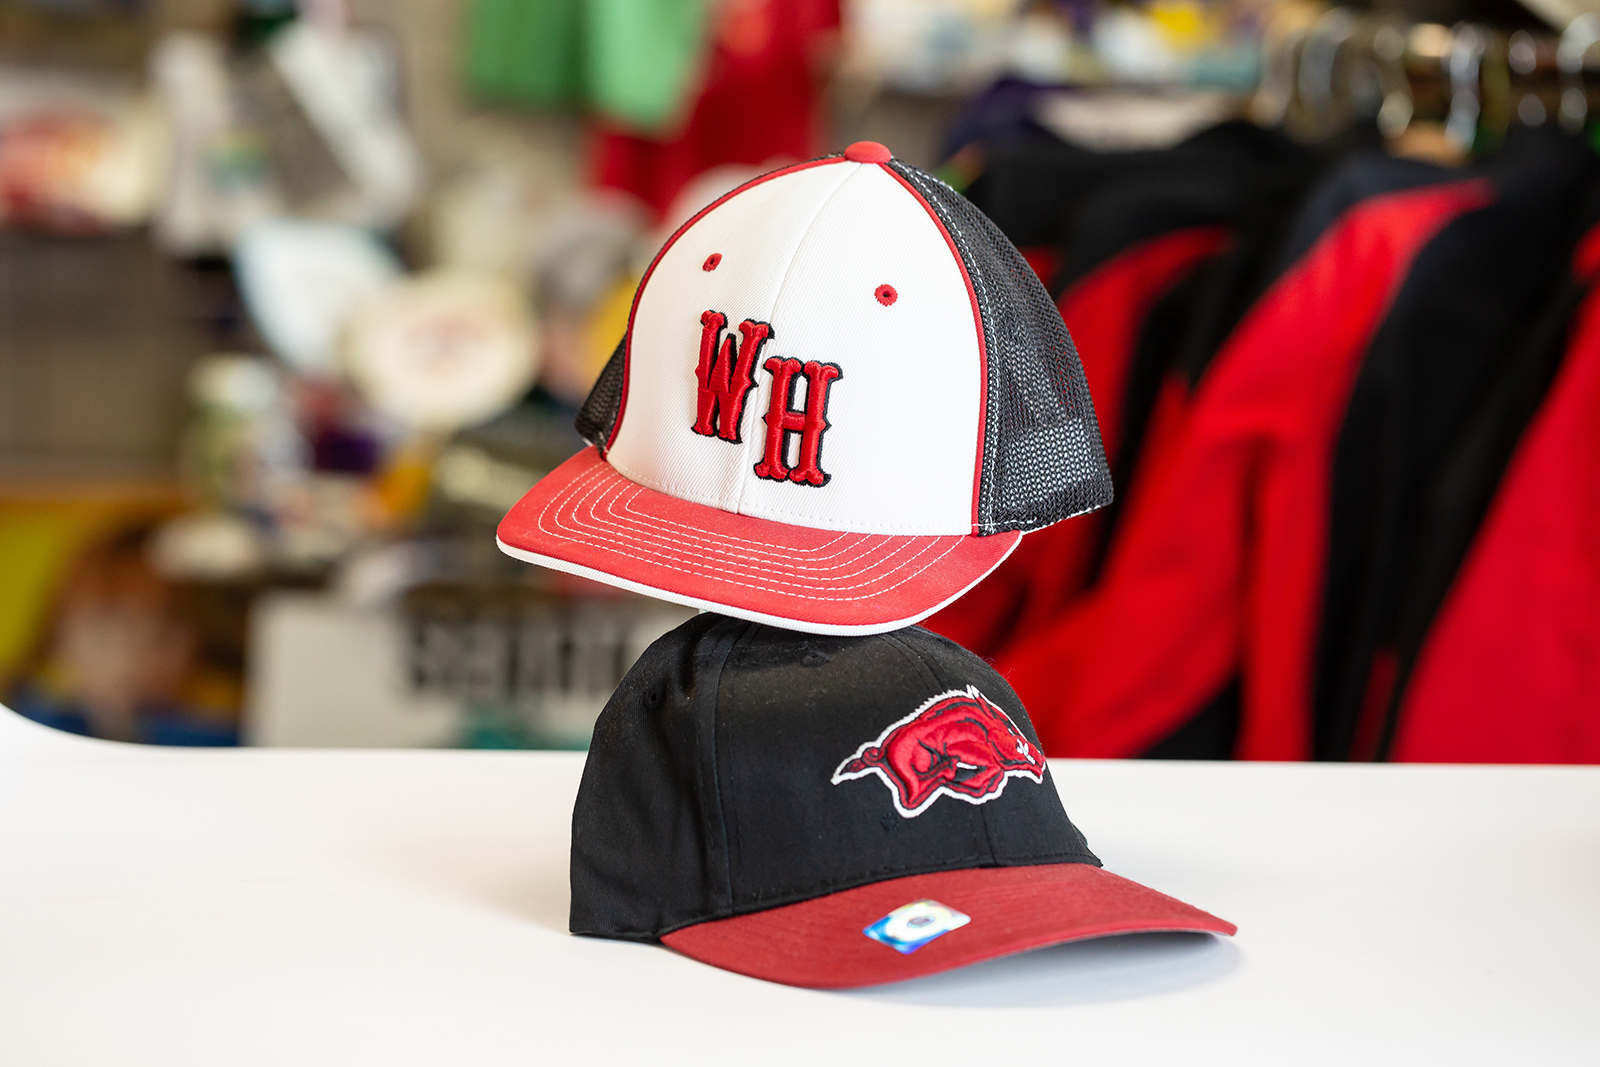 embroidered hats - When you find a high-quality hat with raised embroidery, it just feels right. Our collection of hats is retail quality with deluxe embroidery to match.Our apparel team can handle all your embroidery needs from start to finish.